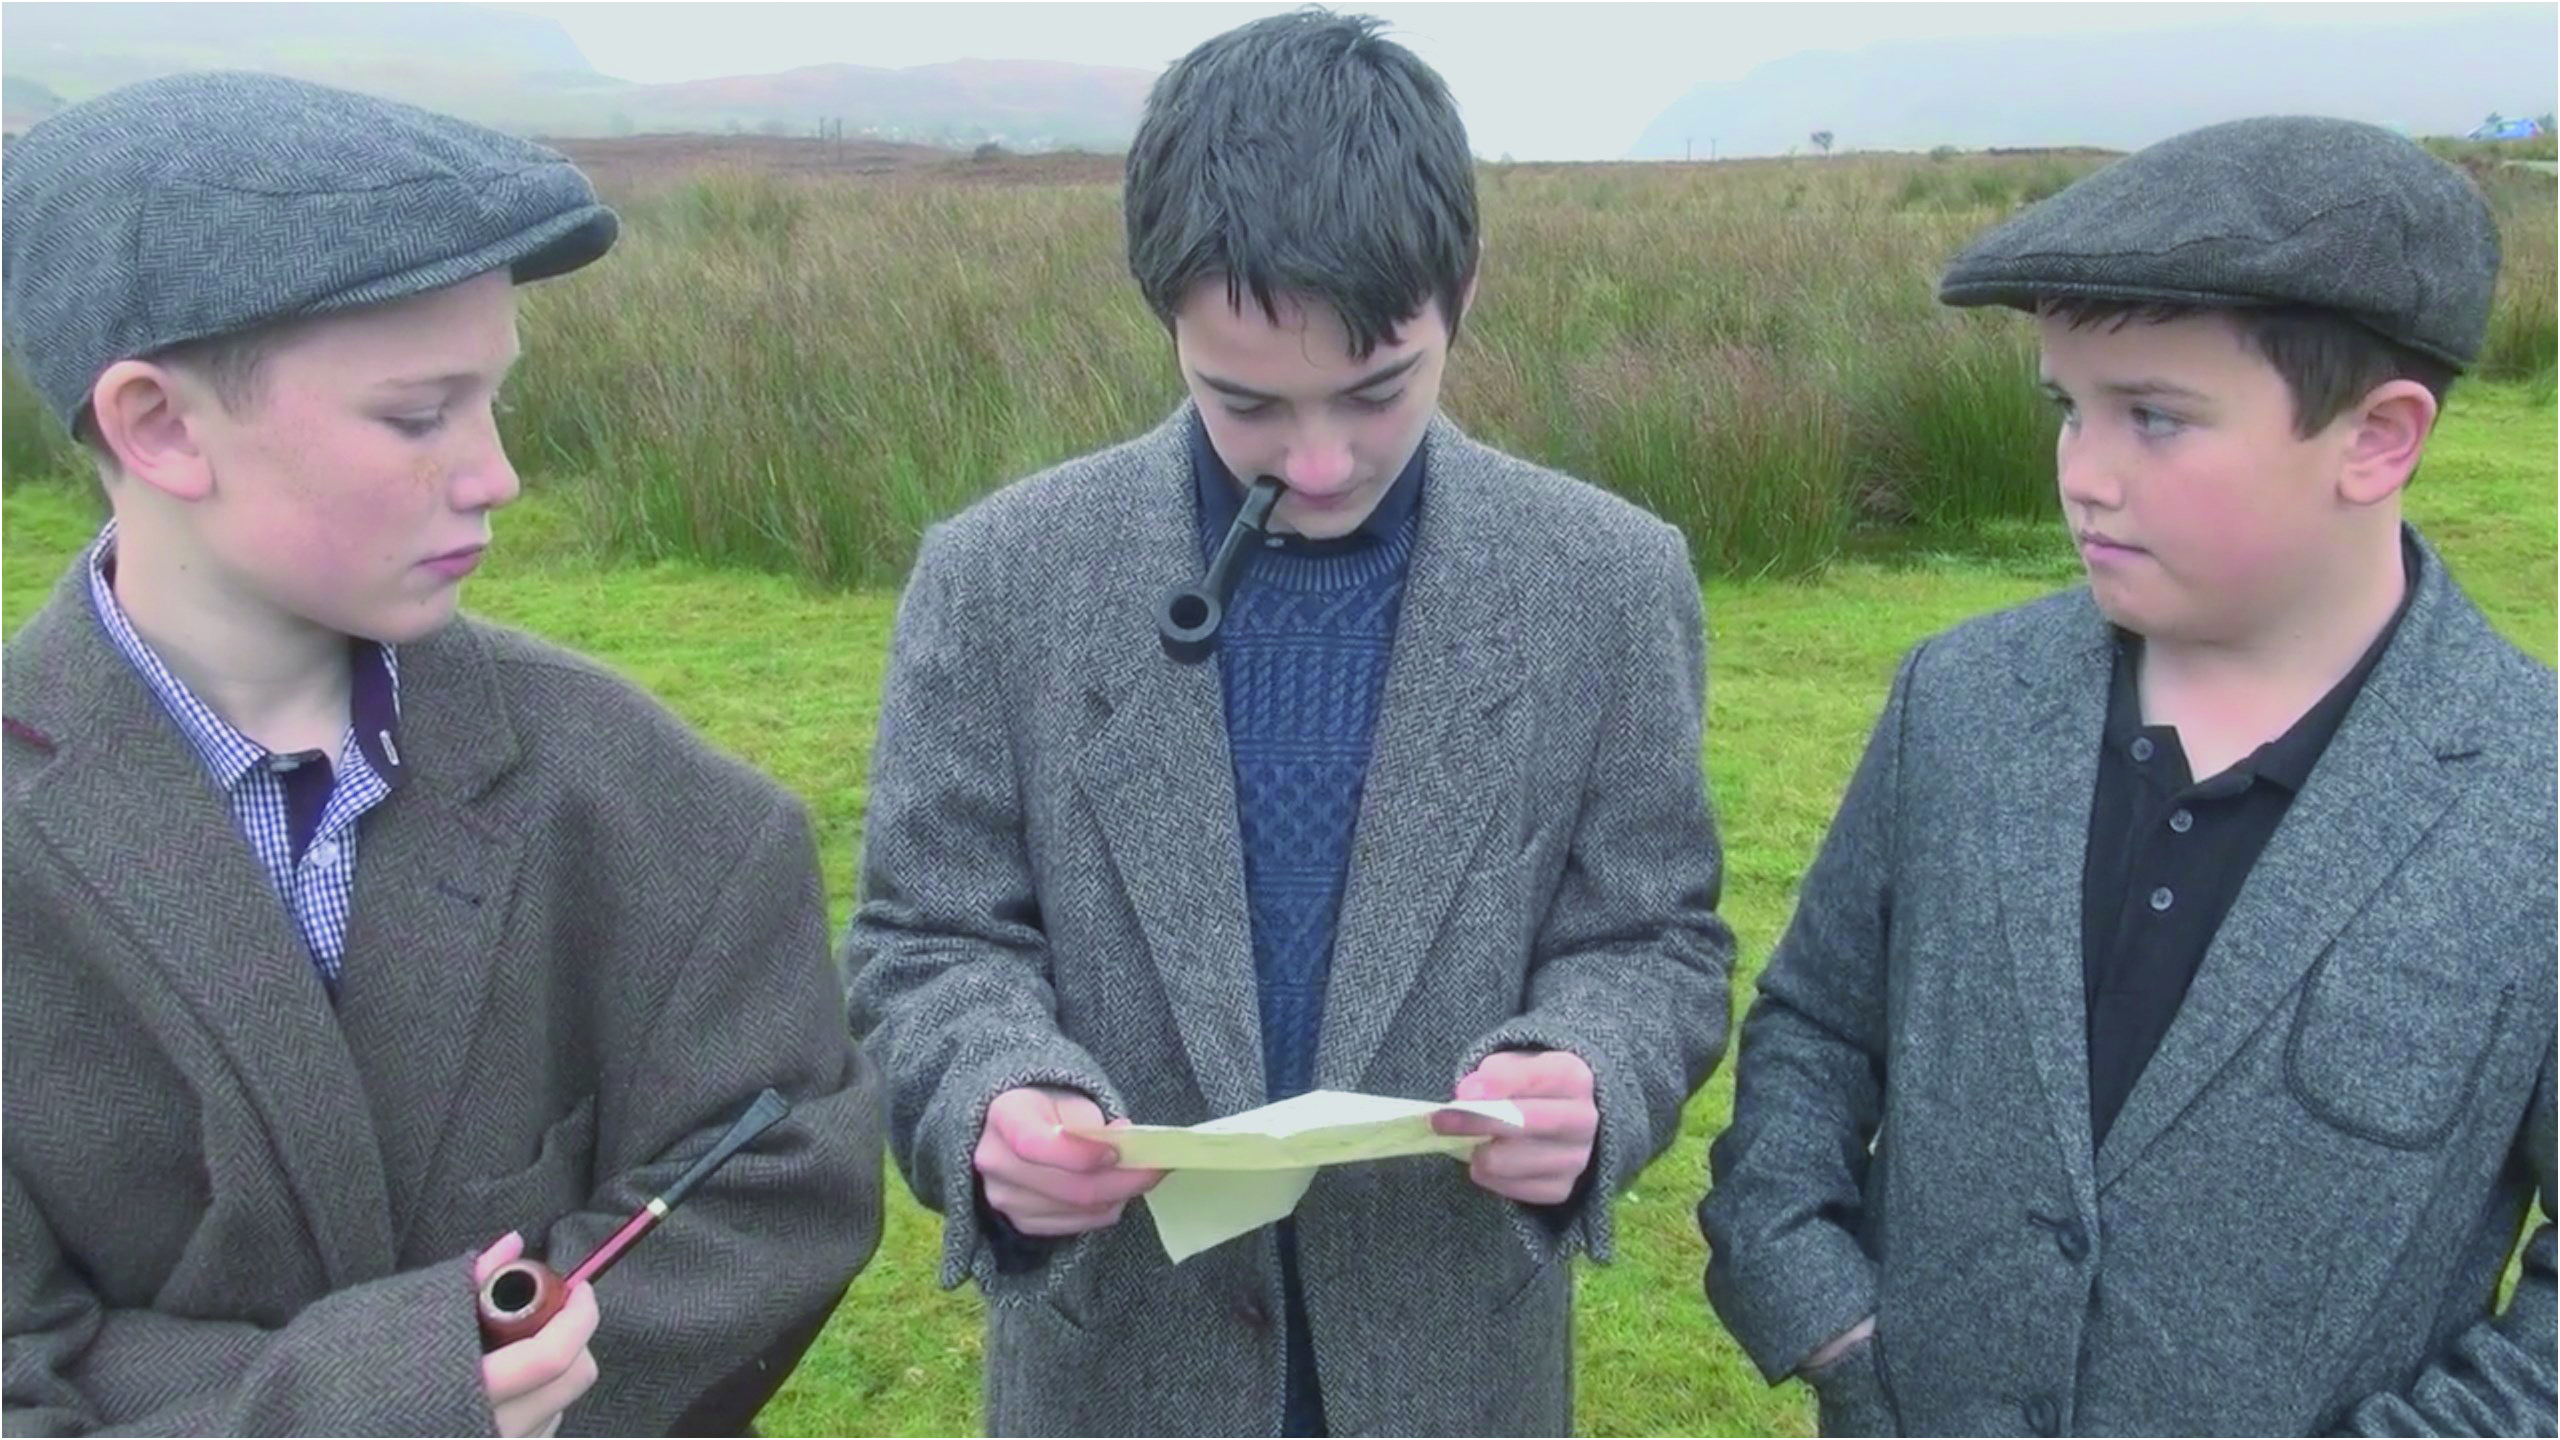 Ewen Jeffrey, Seumas Tinney and Josh MacPherson in a scene from the Portree High School's entry